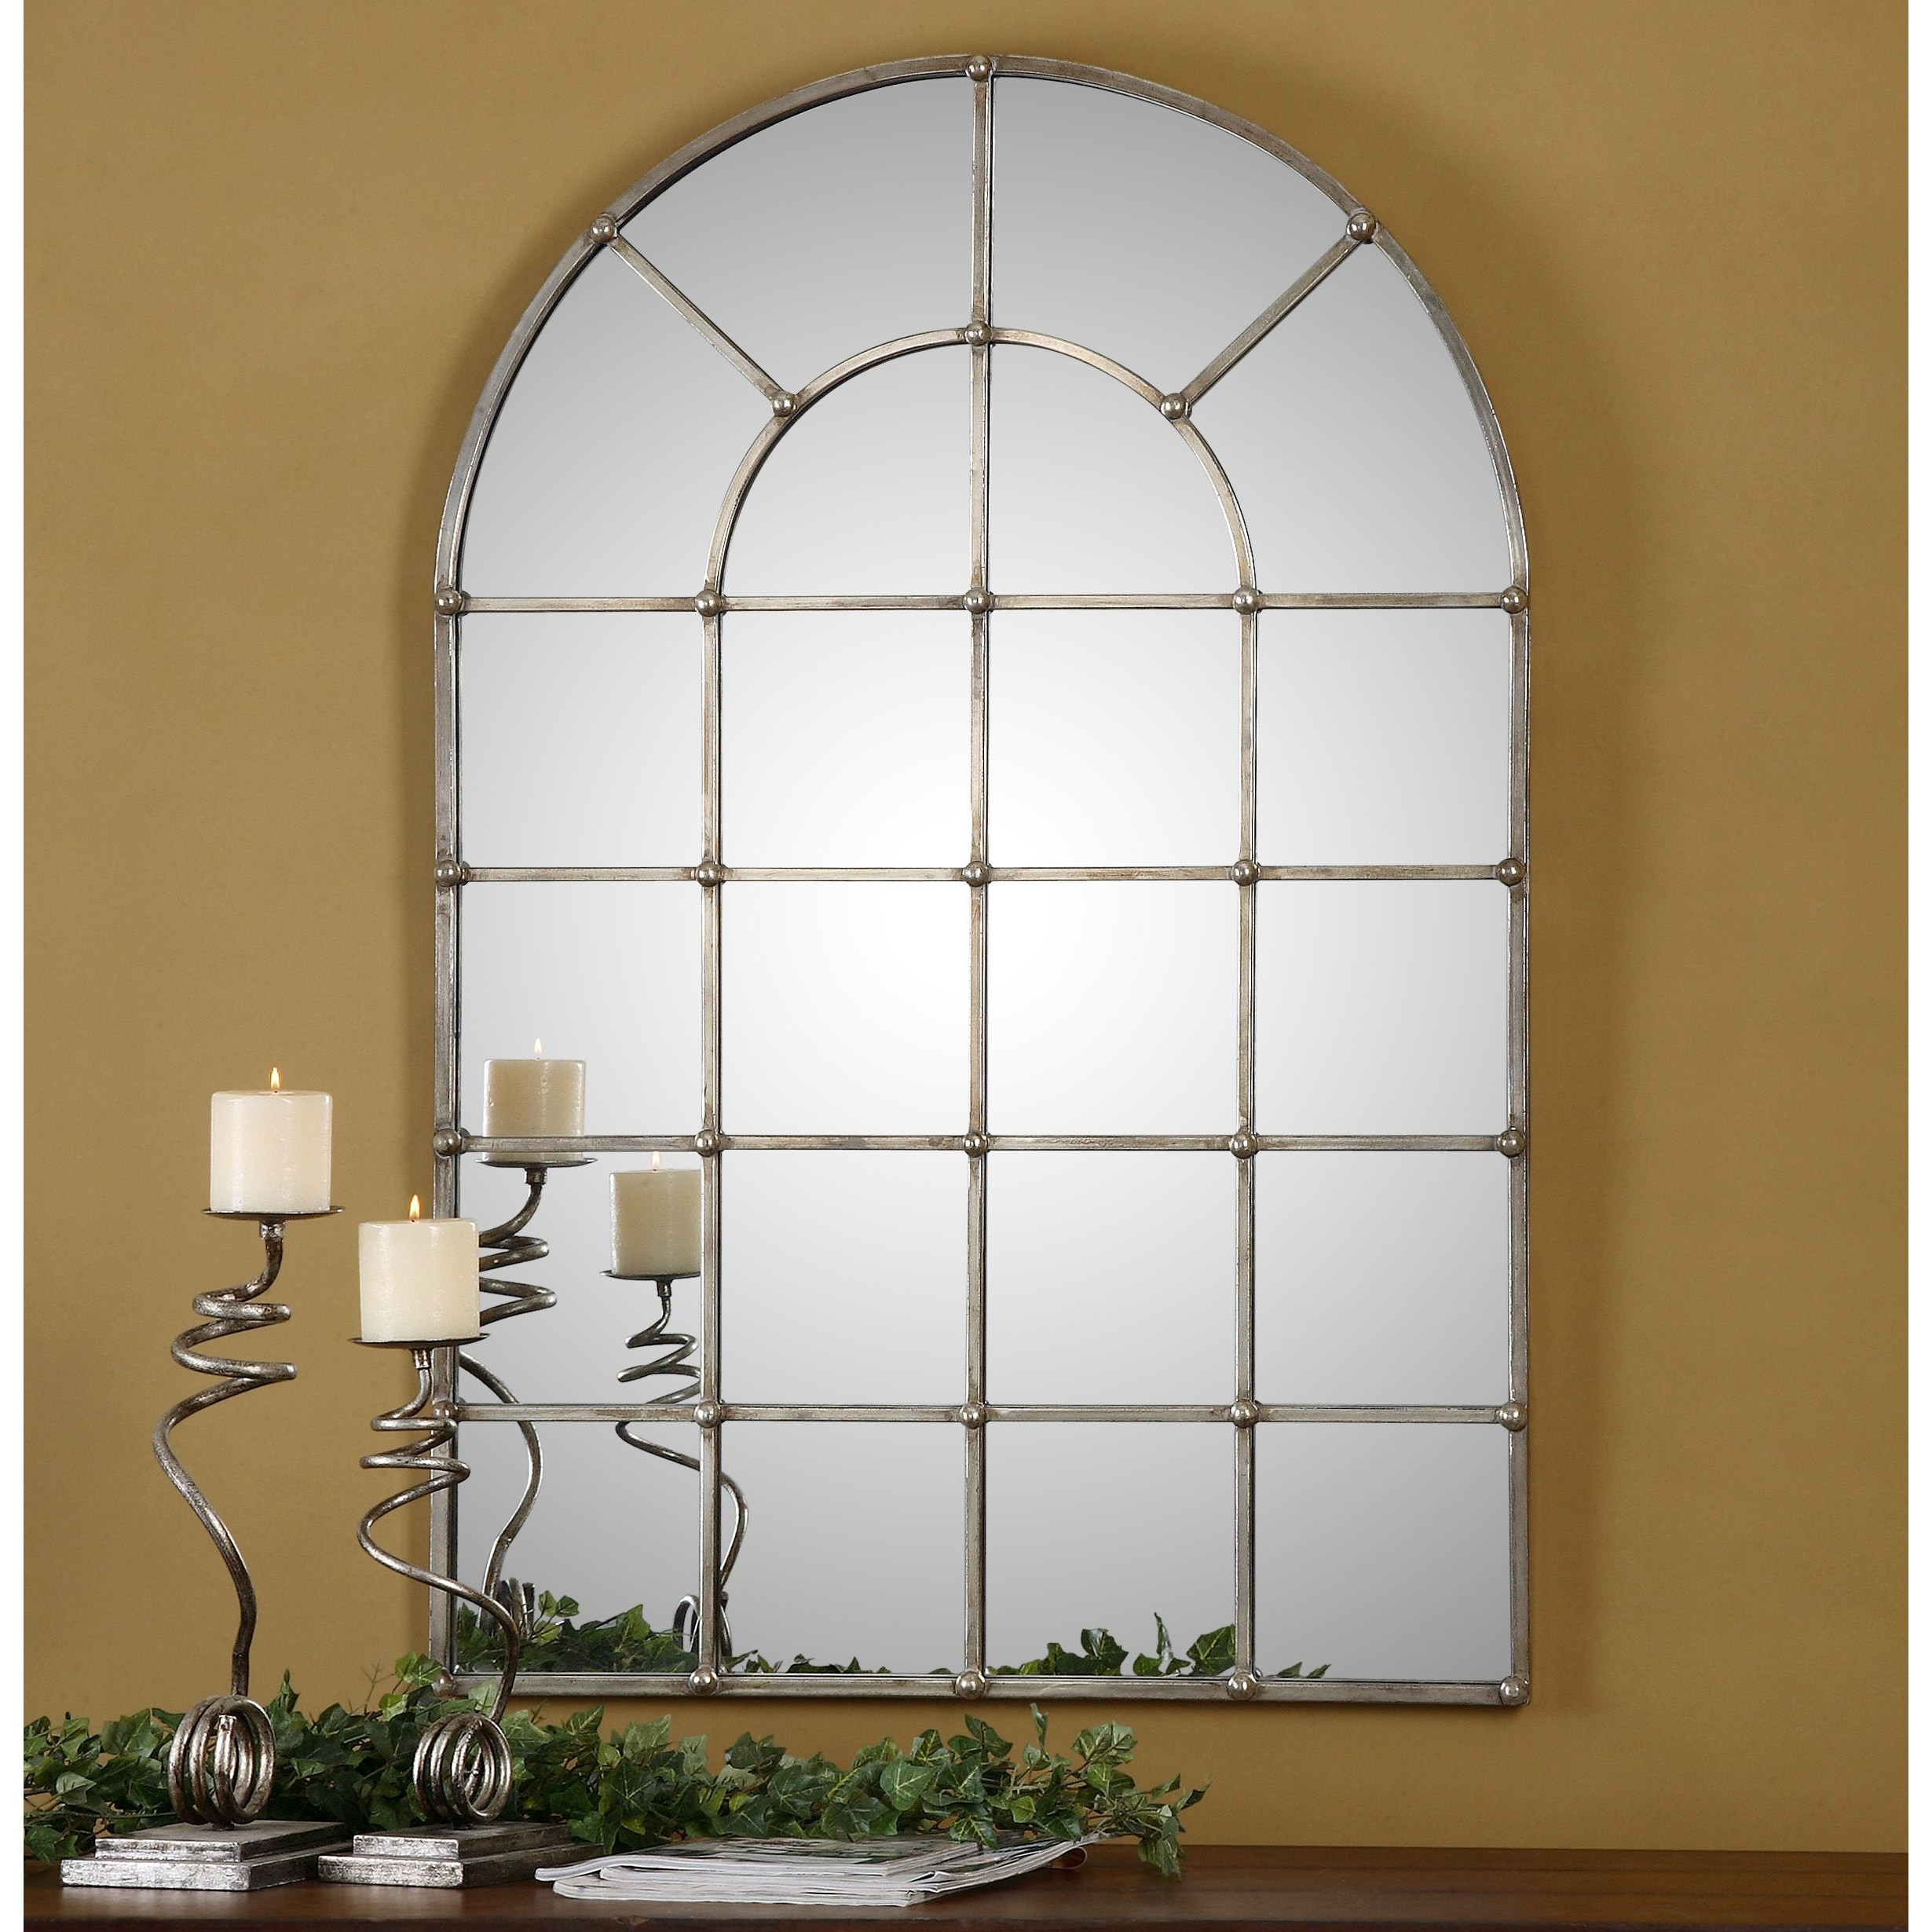 Uttermost Barwell Arch Window Mirror Reviews Wayfair Stacy With Large Arched Mirrors (Image 13 of 15)